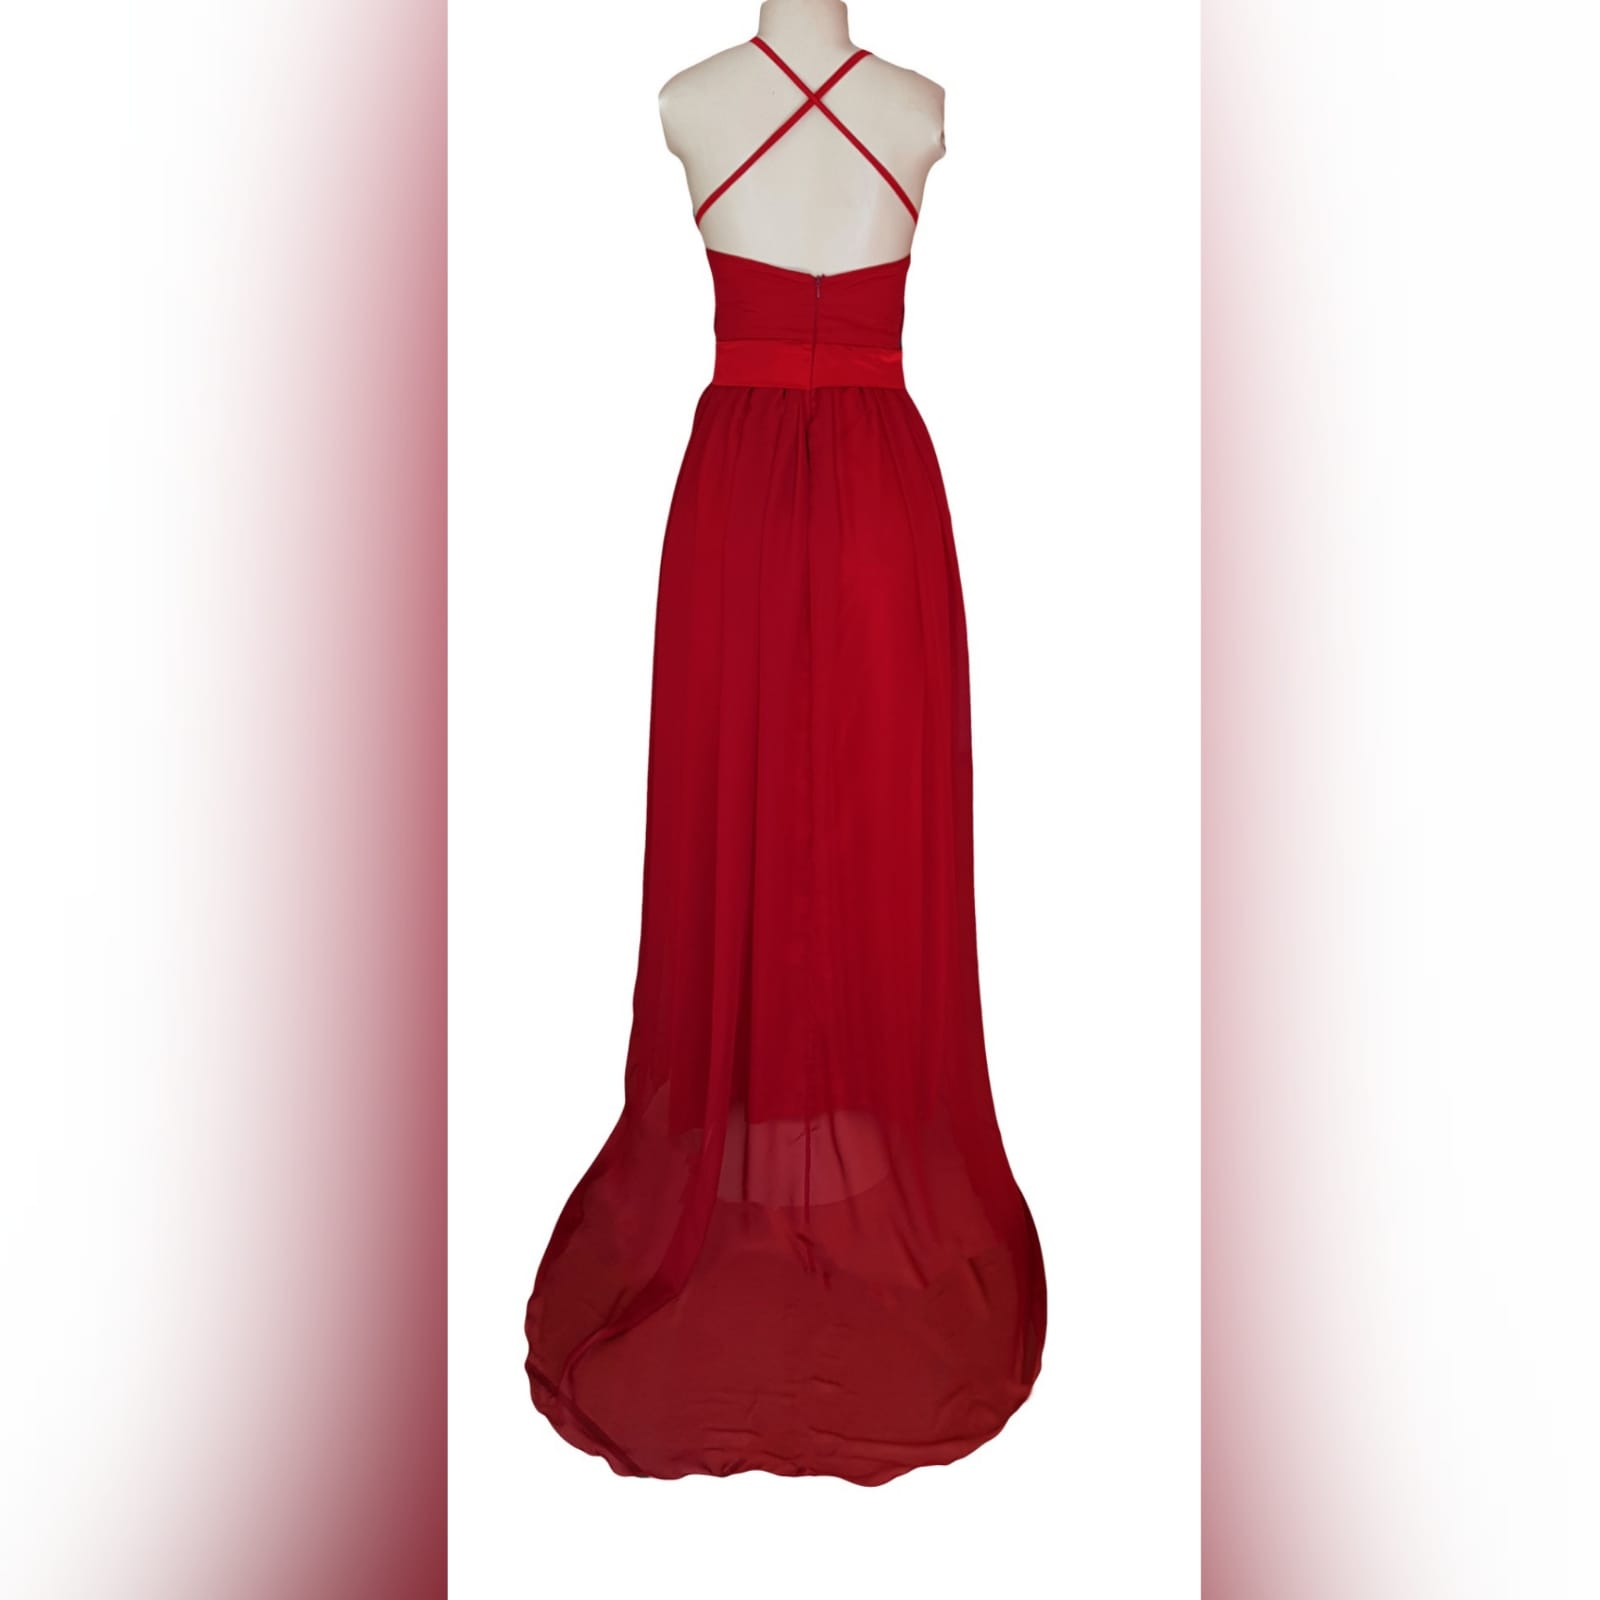 Elegant and sexy red long chiffon evening dress 5 an elegant and sexy red long chiffon evening dress with a v neckline. Open back with thin crossed straps. 2 high sheer slits and a train.